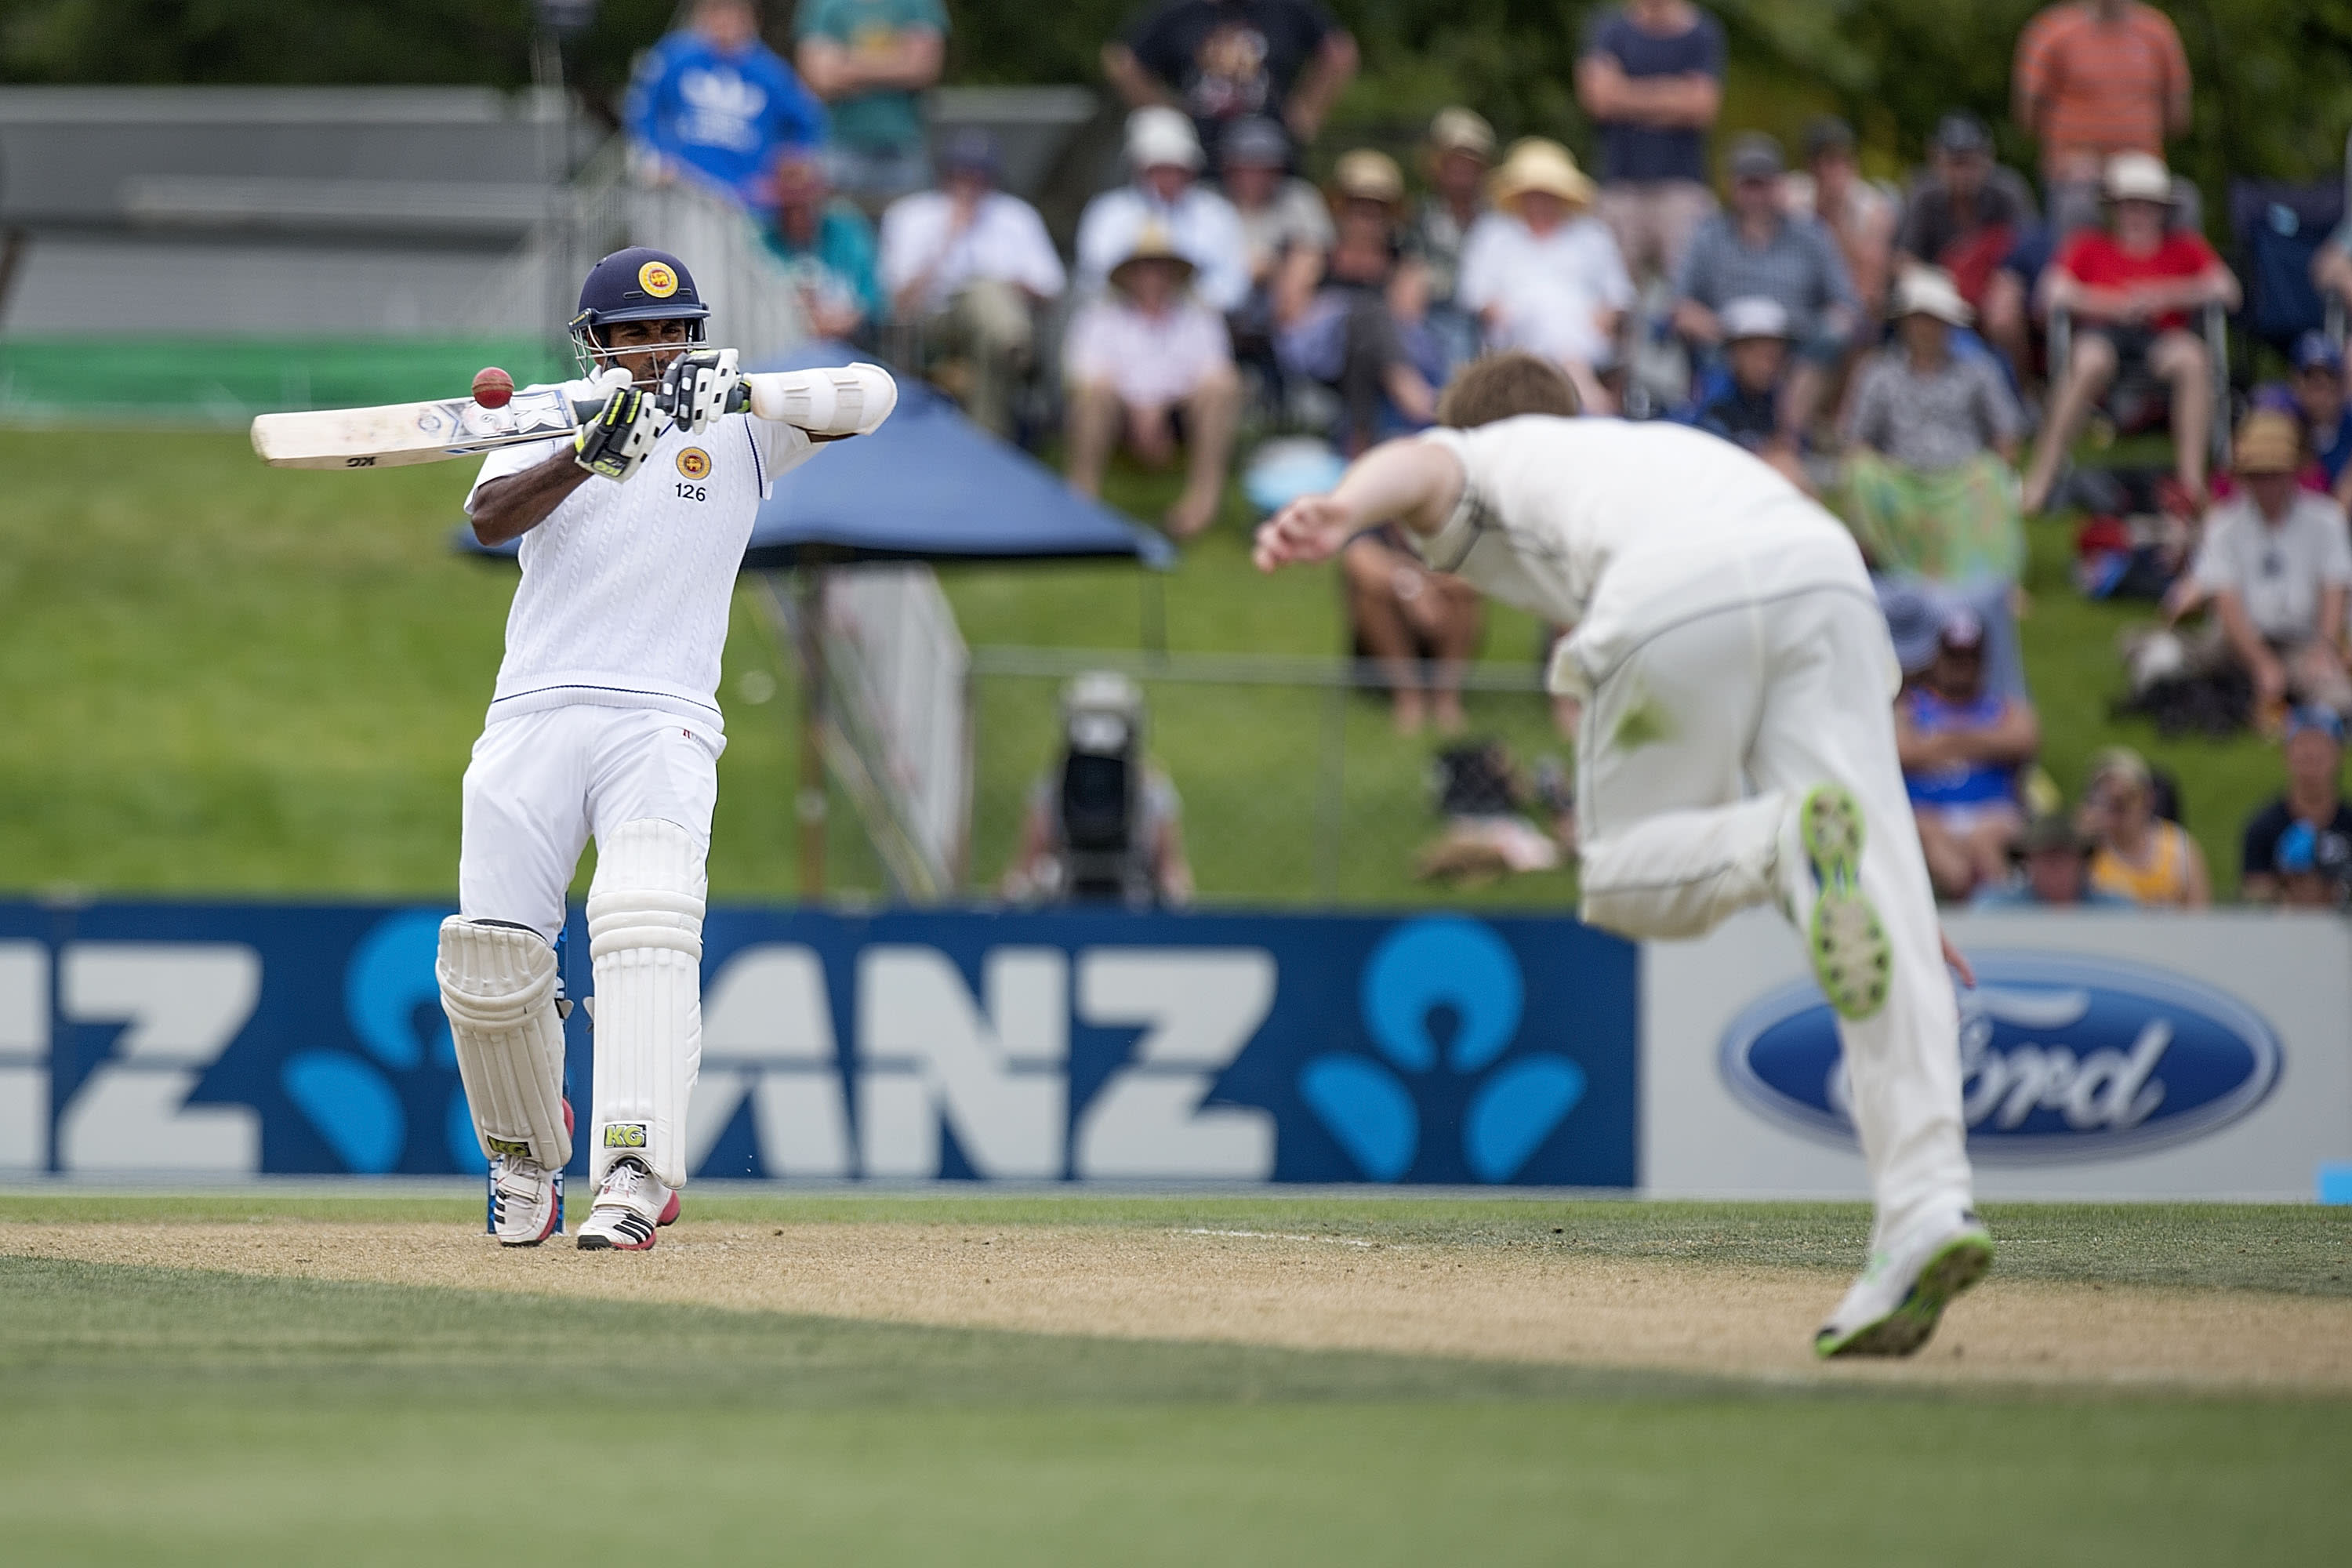 Sri Lanka in fight to survive against New Zealand